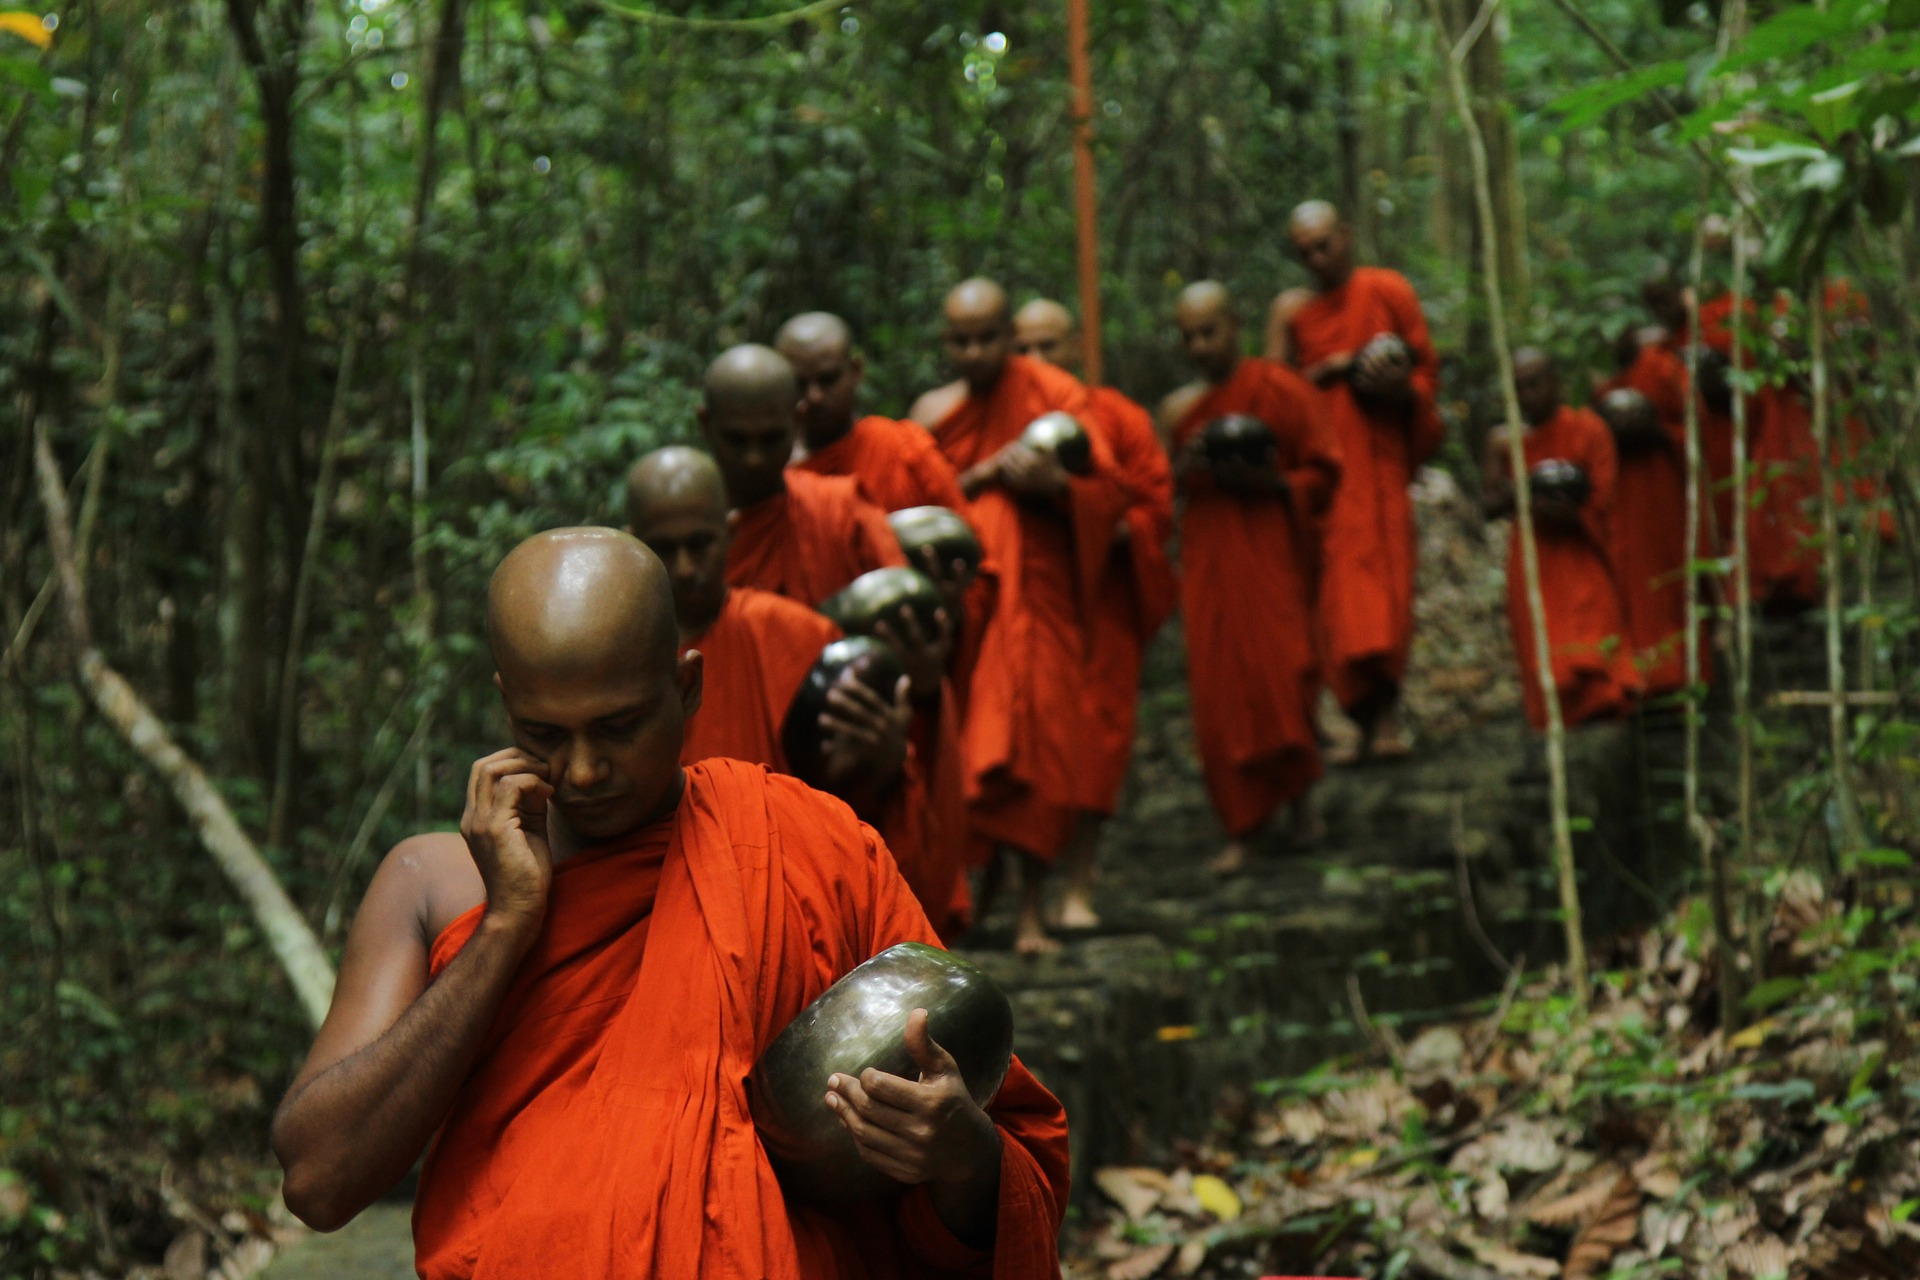 Sadaham Yathra monks walking along a wooden path.